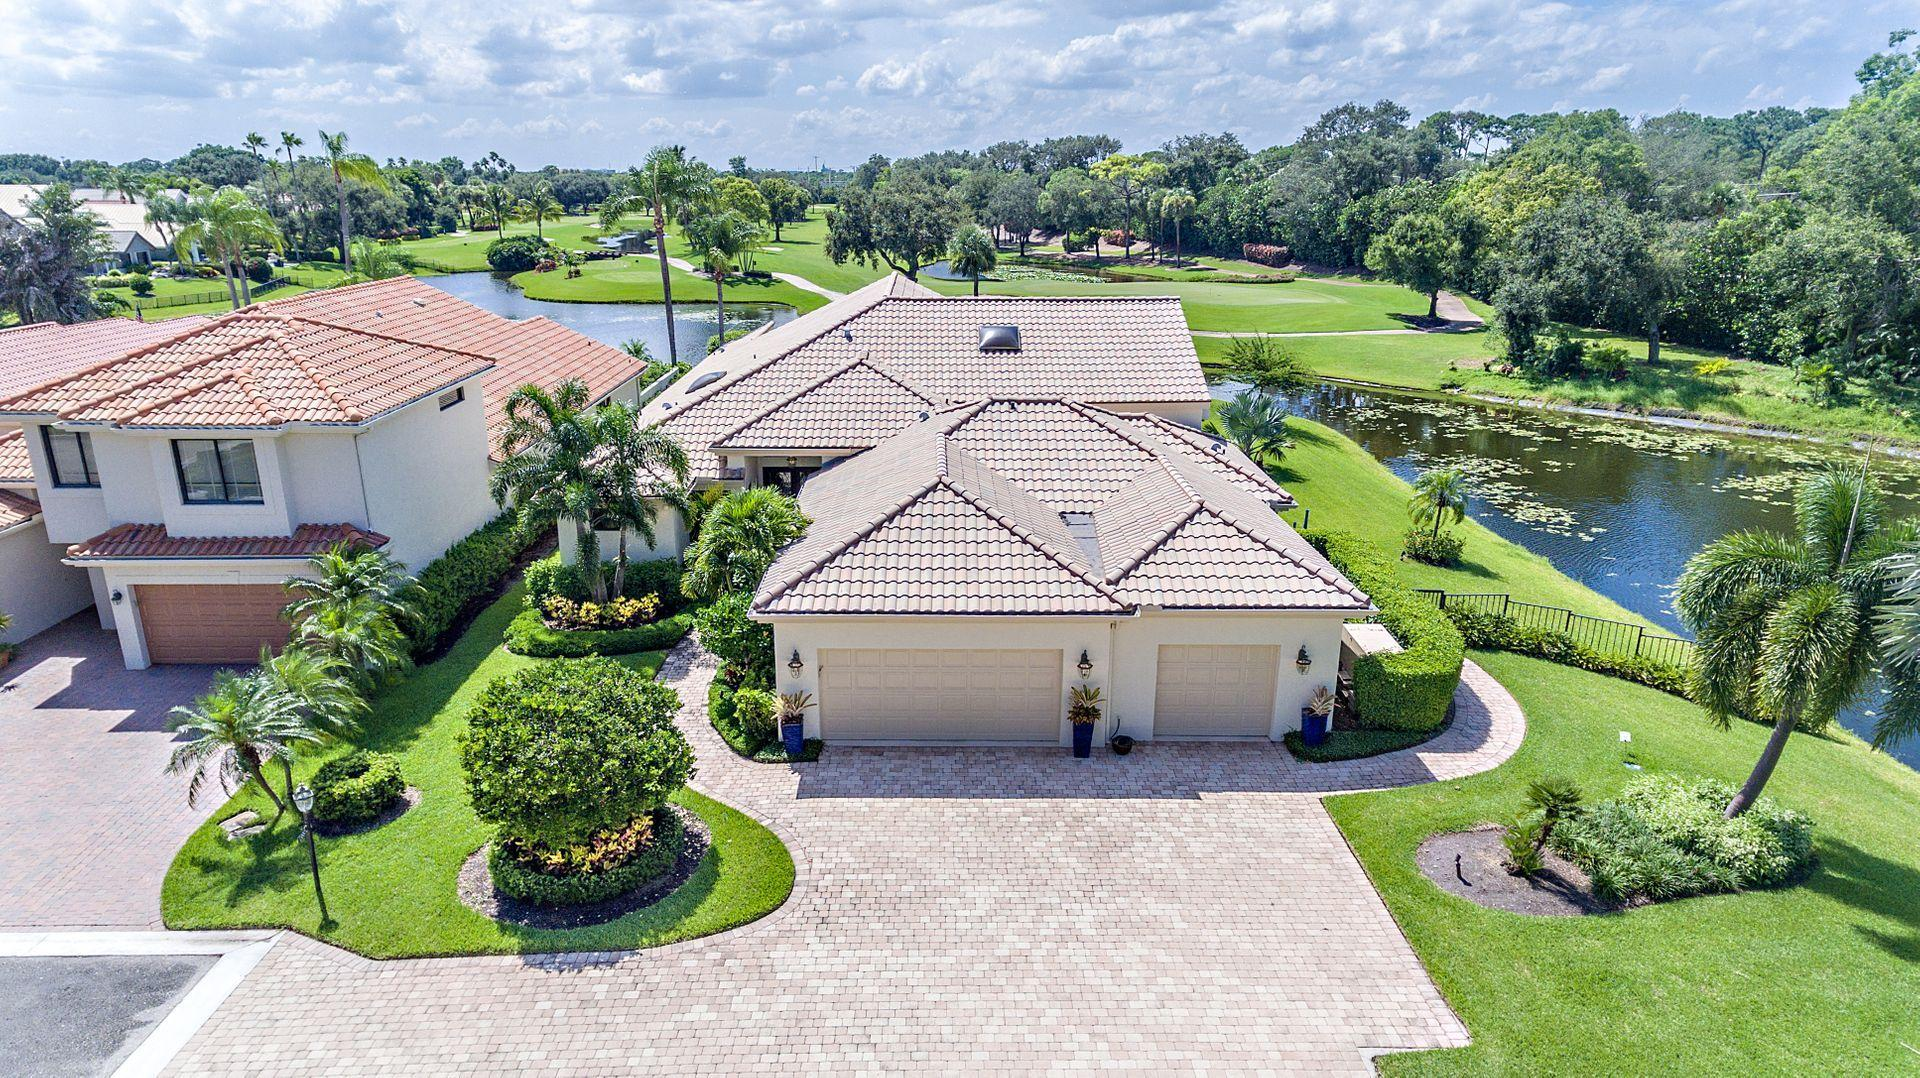 13885 Le Havre Drive, Palm Beach Gardens, Florida 33410, 3 Bedrooms Bedrooms, ,5.1 BathroomsBathrooms,A,Single family,Le Havre,RX-10456612